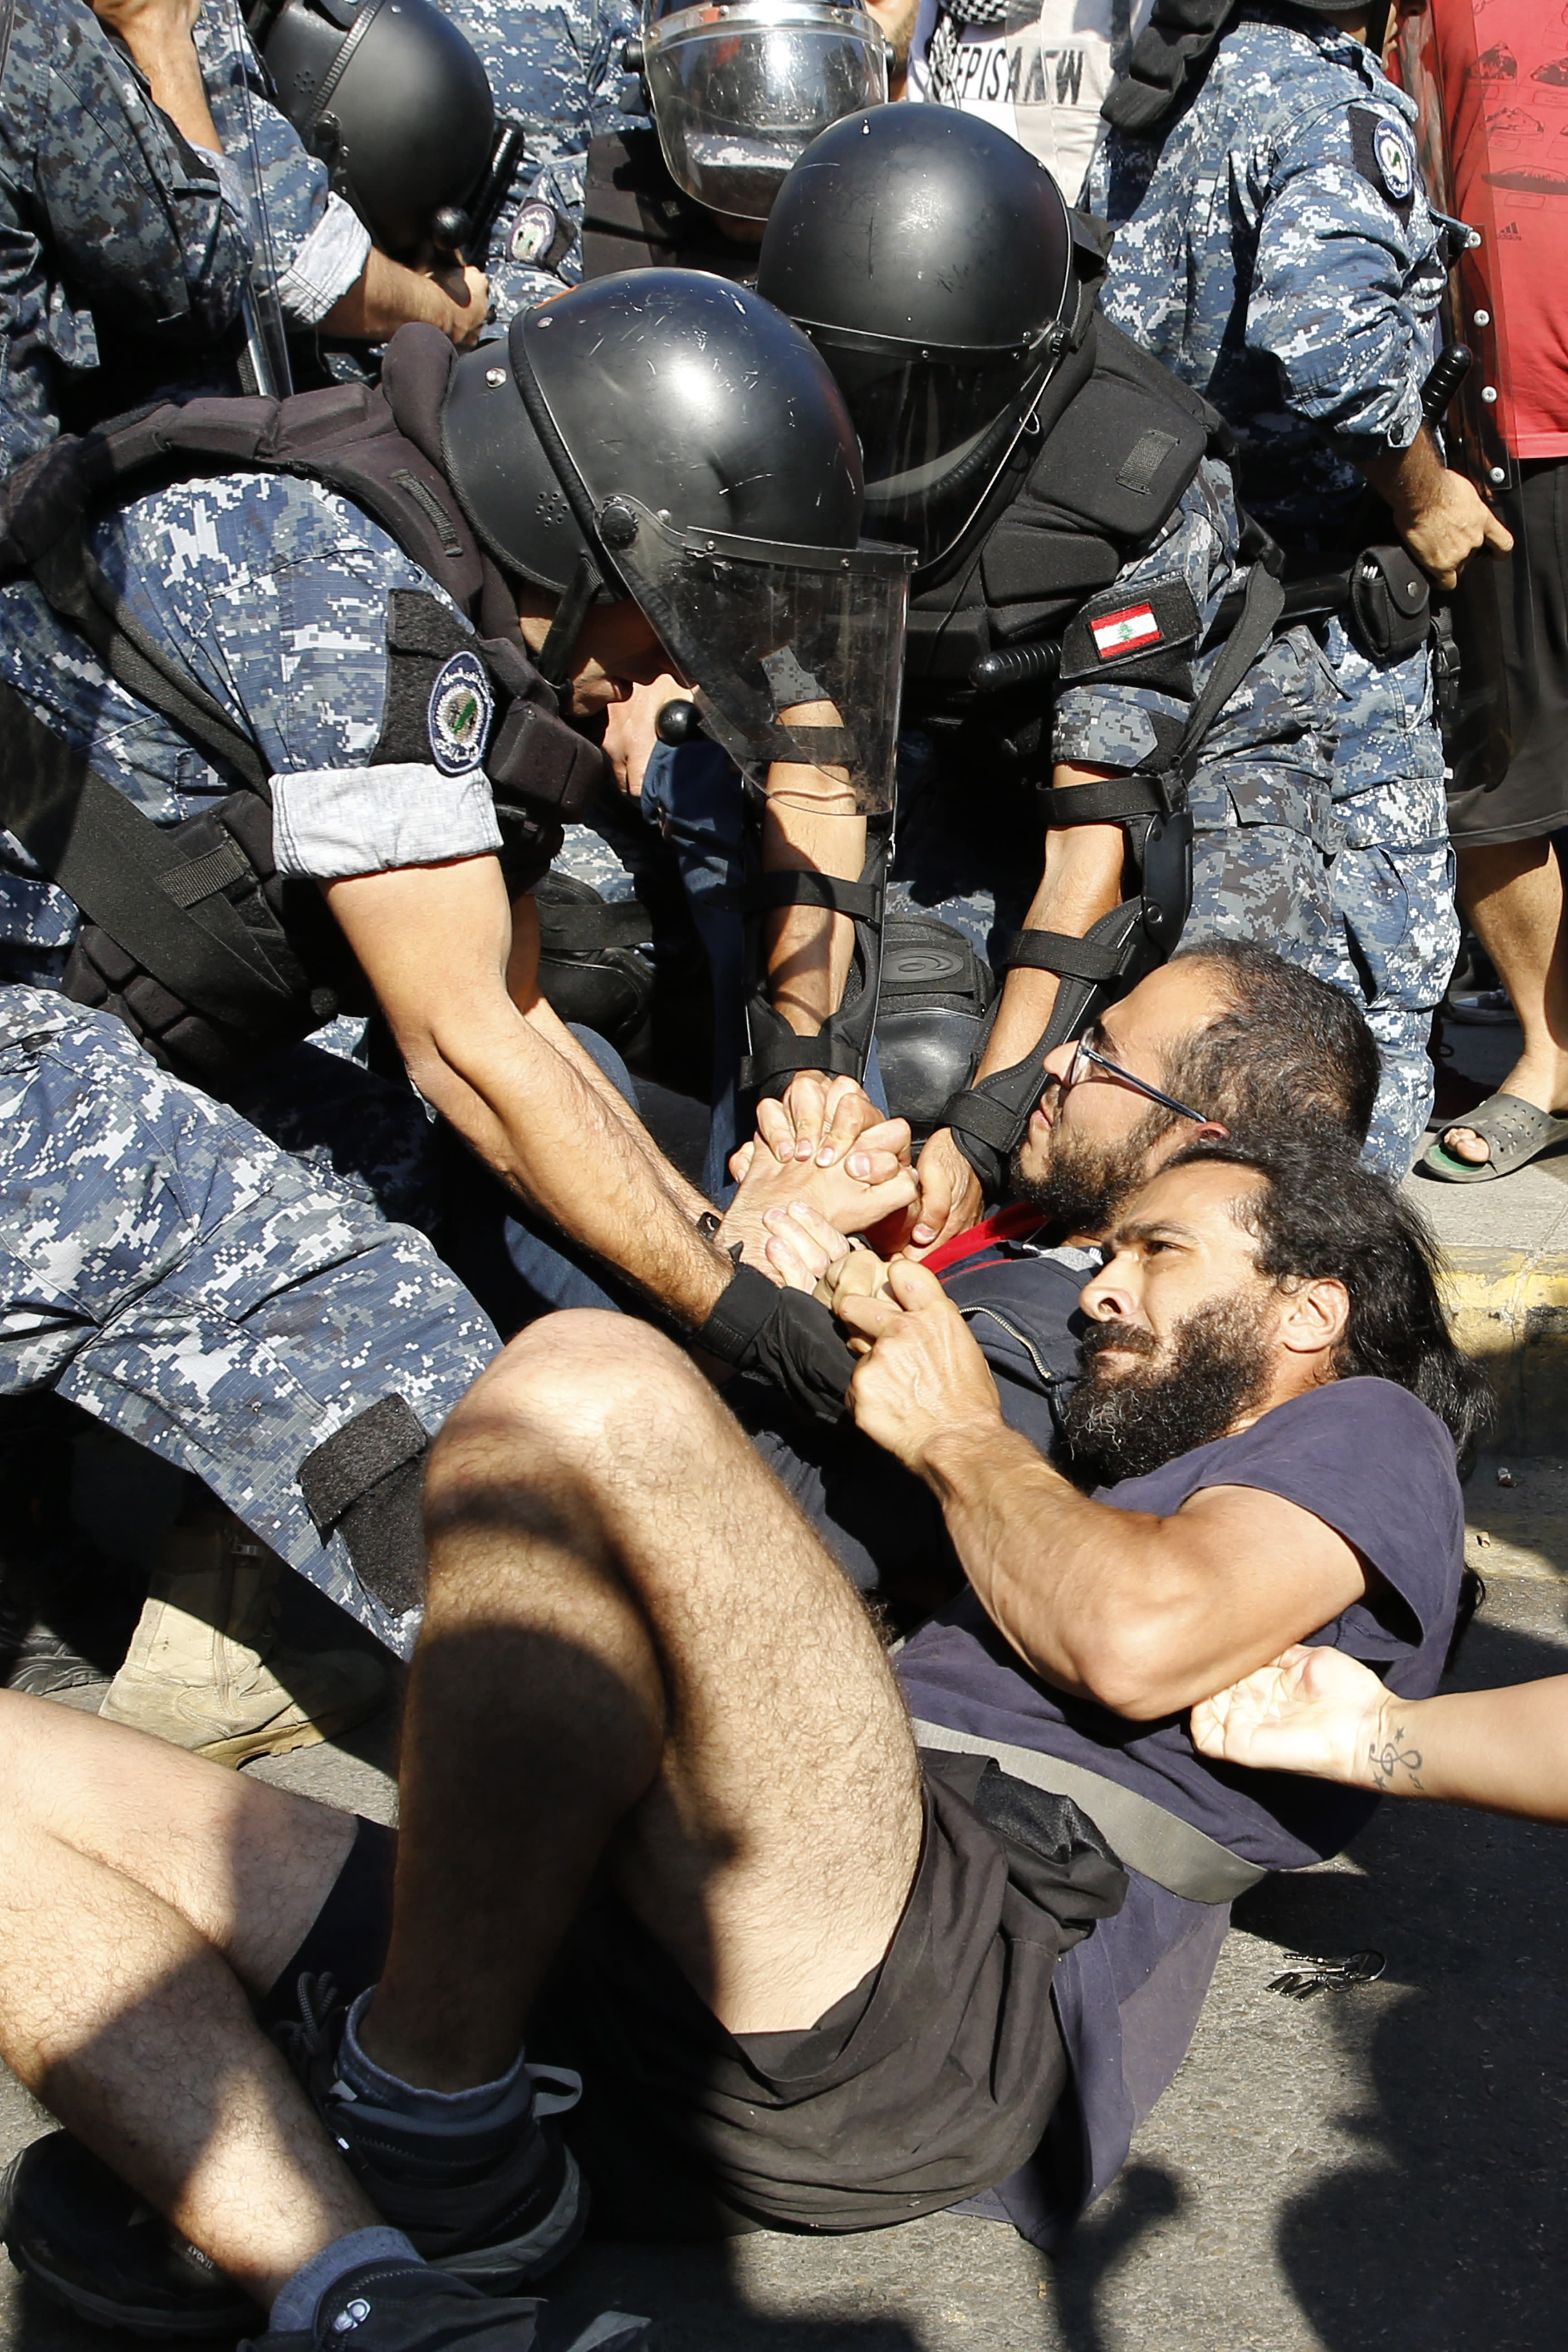 Anti-government protesters lie on a road holding each other as riot police try to remove them and open the road, in Beirut, Lebanon, Thursday, Oct. 31, 2019. Army units and riot police took down barriers and tents set up in the middle of highways and major intersections Thursday. (AP Photo/Bilal Hussein)